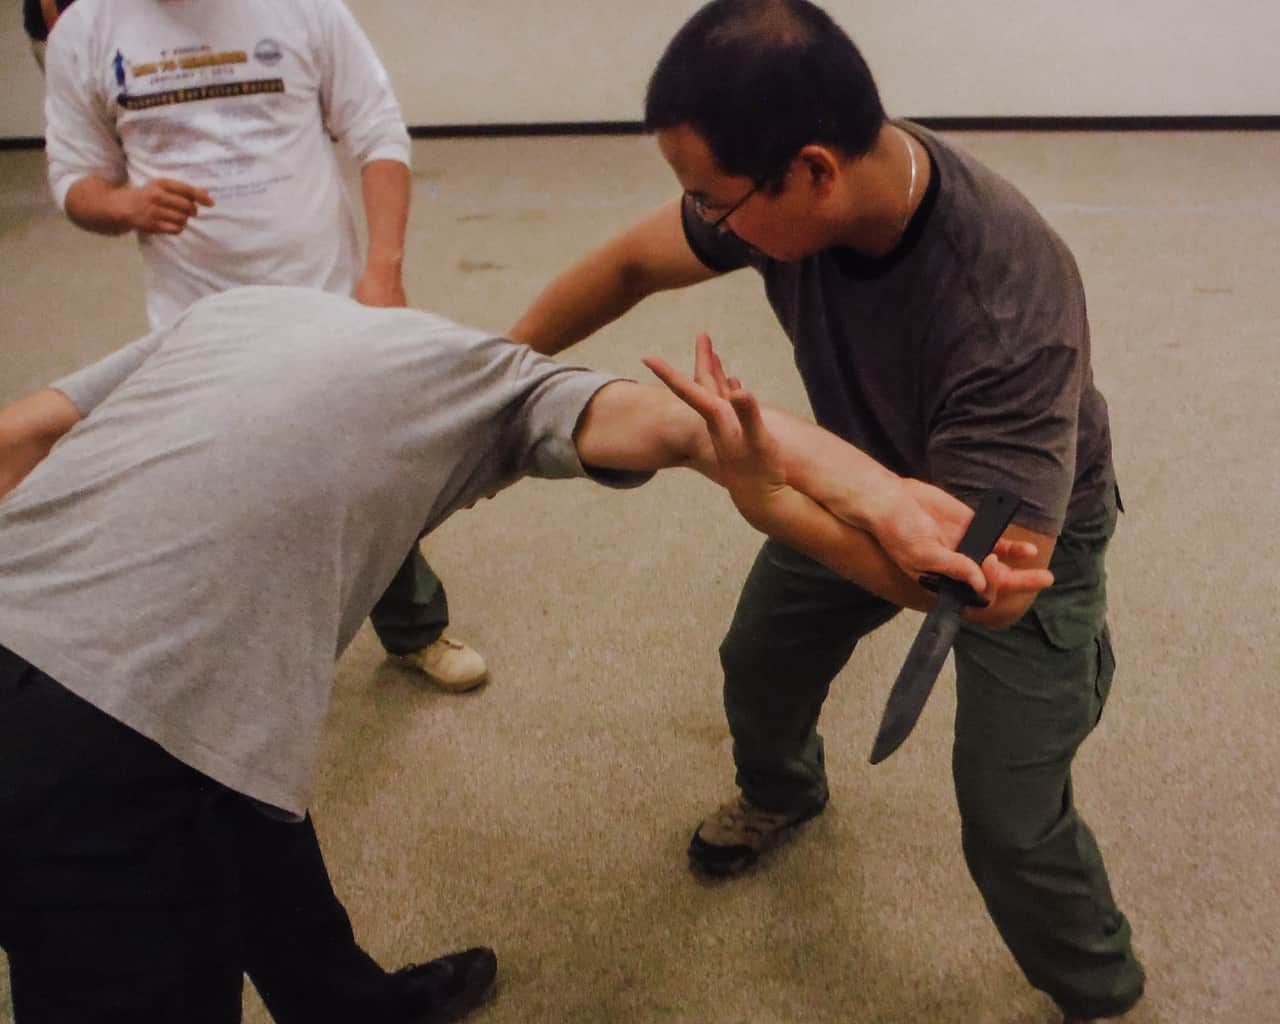 prevailing-against-edged-weapons-13